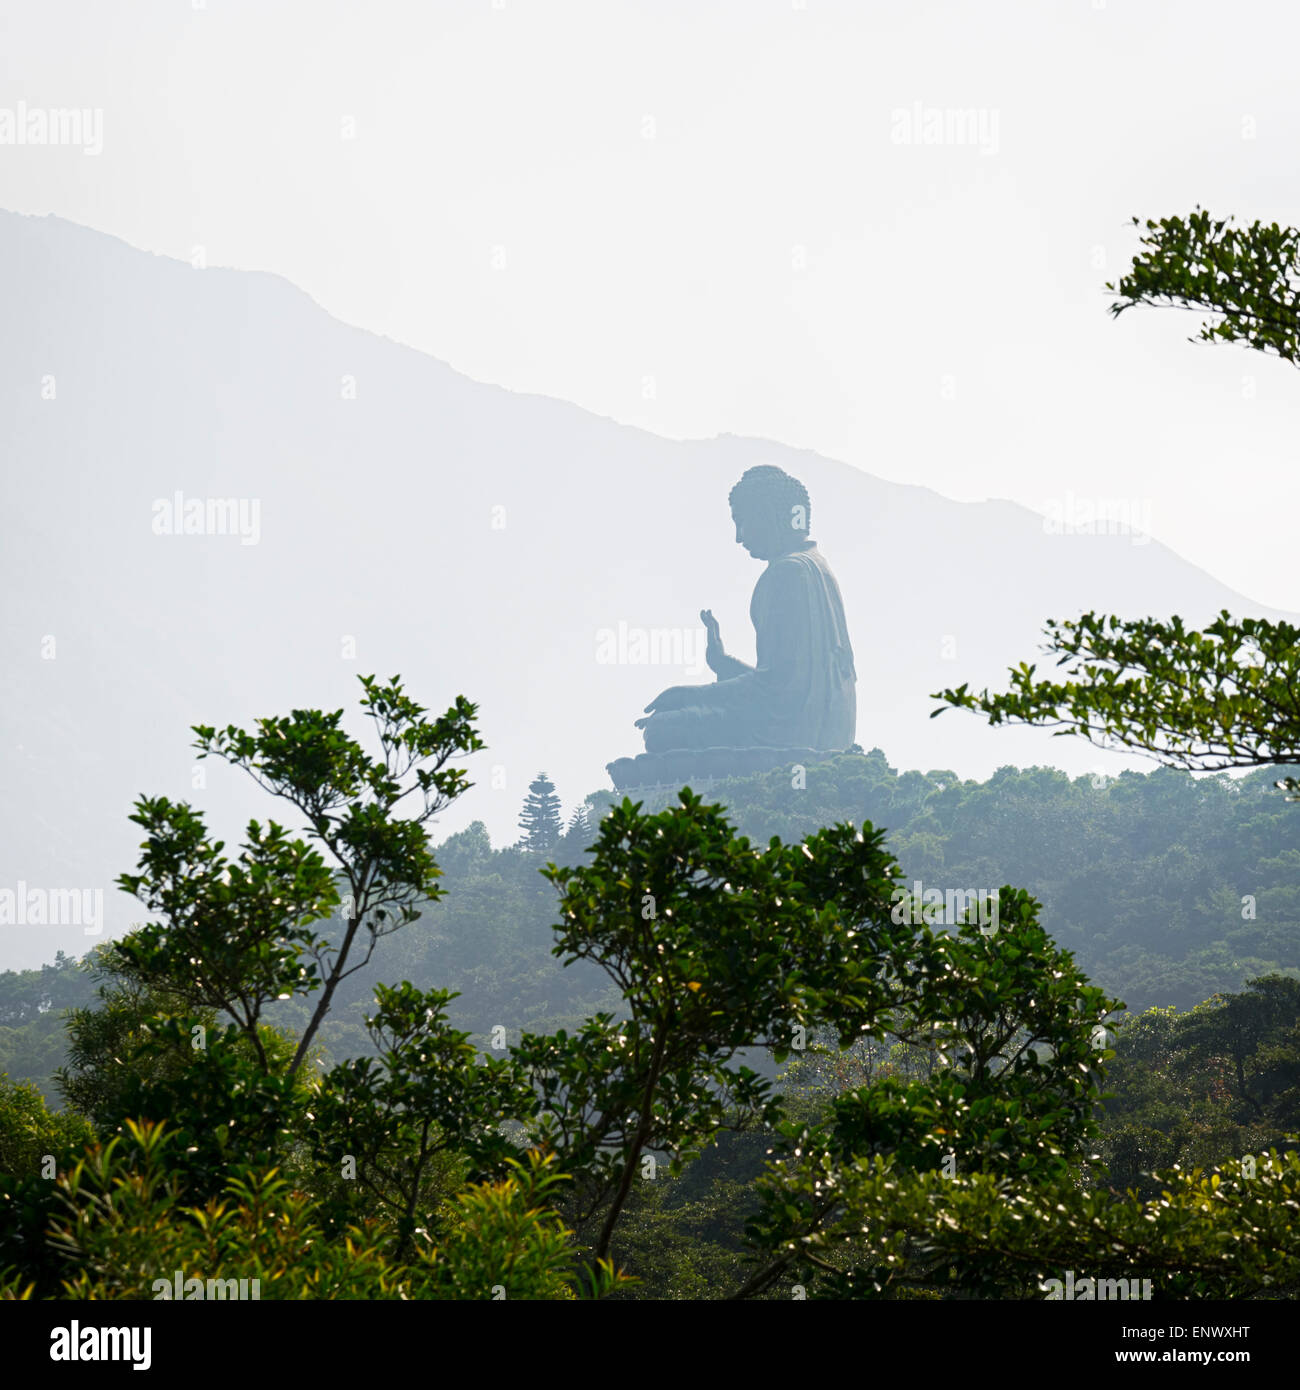 The Giant Buddha in Lantau Island, Hong Kong Stock Photo